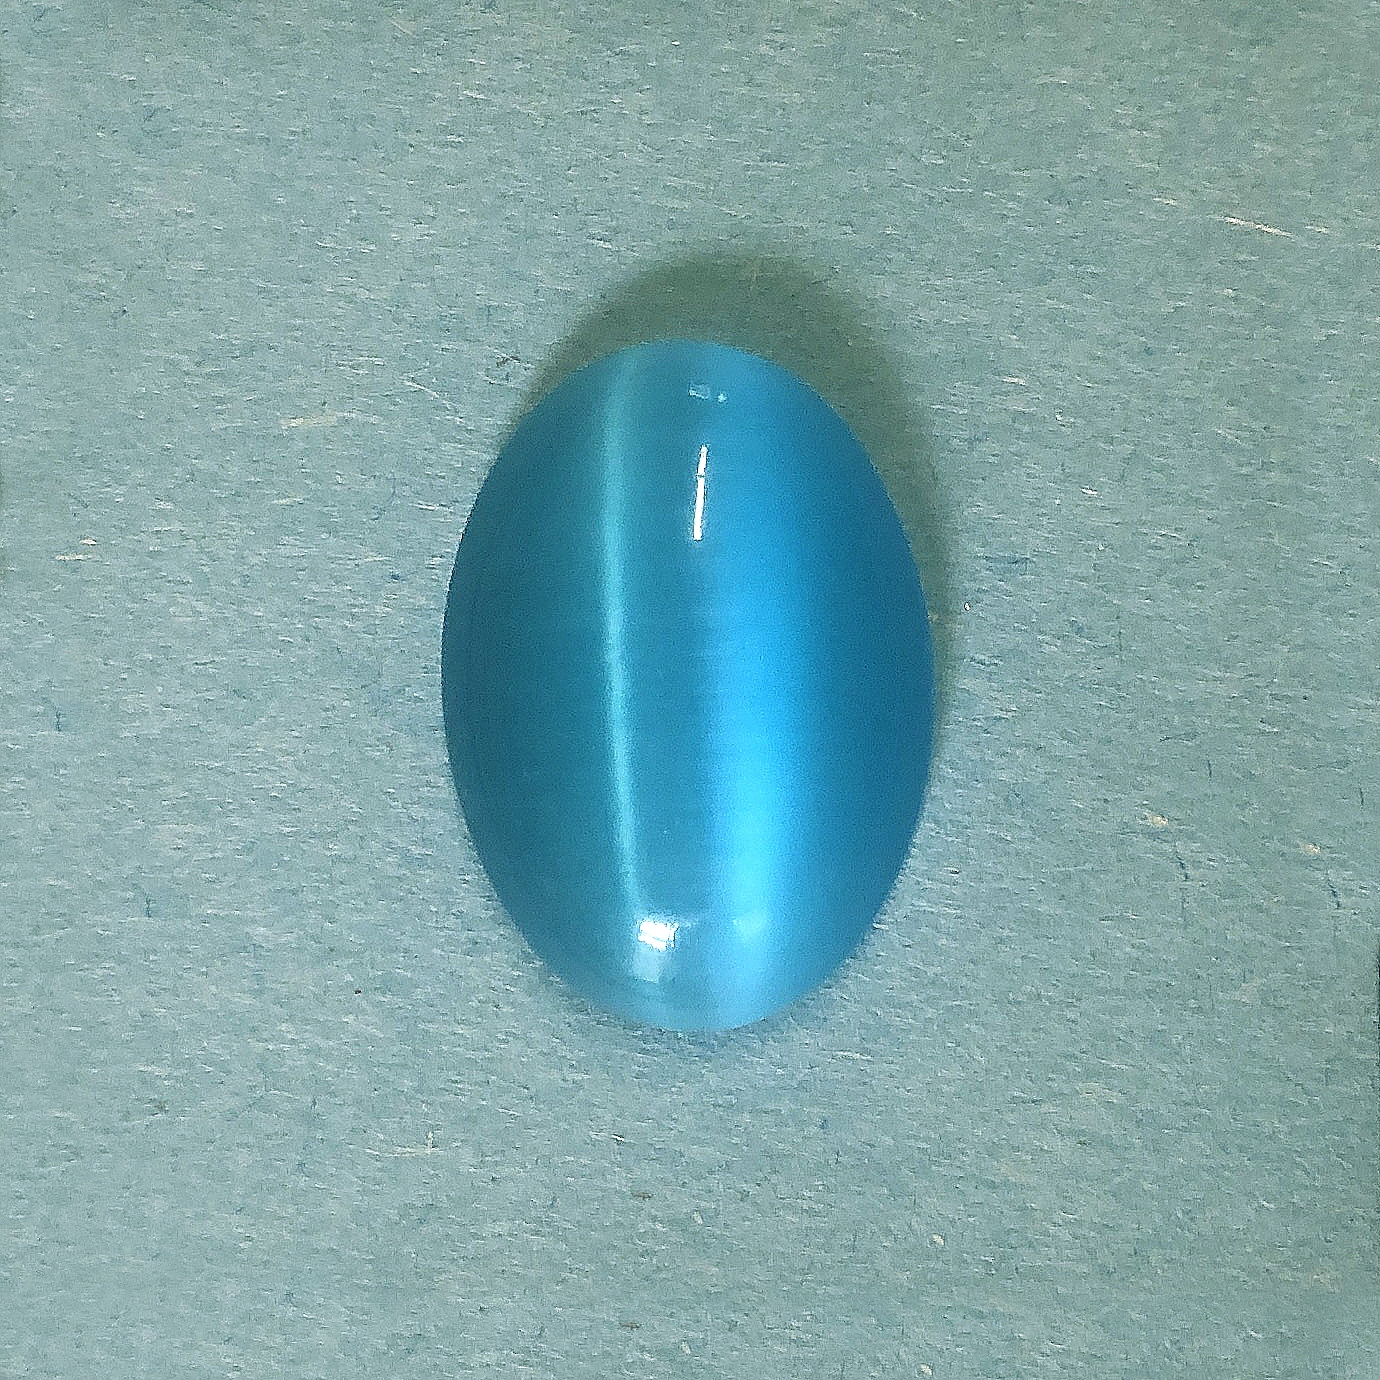 aqua cat's eye stone, focal stone, fiber optic, glass stone, glass, cat's eye, aqua stone, cabochon, transparent, oval, glossy shine, oval stone, US made, B'sue Boutiques, jewelry stone, 25x18mm, 09704